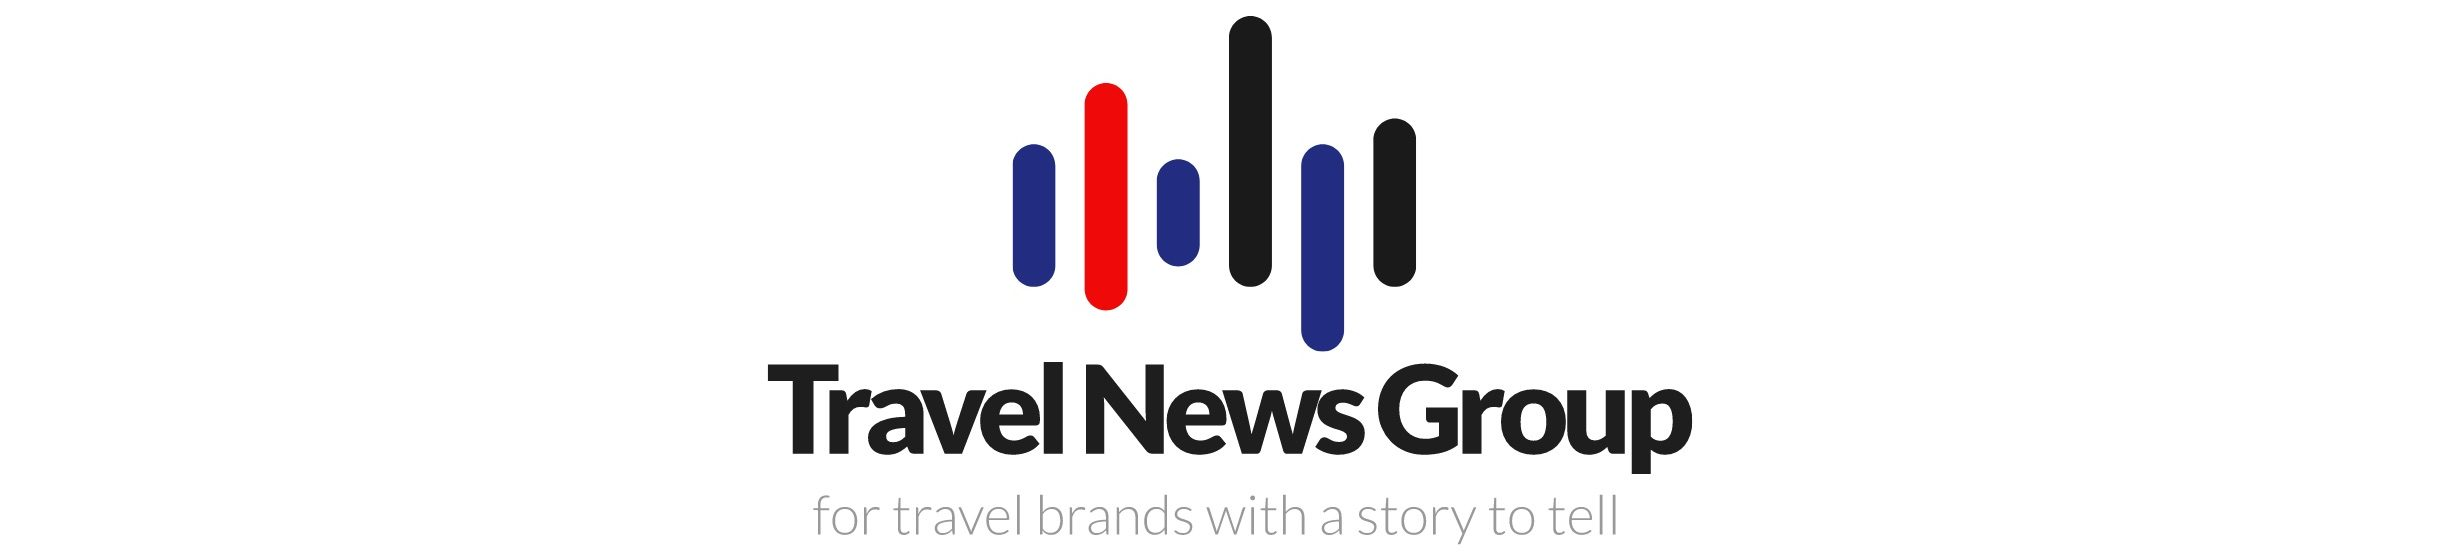 Travel News Group